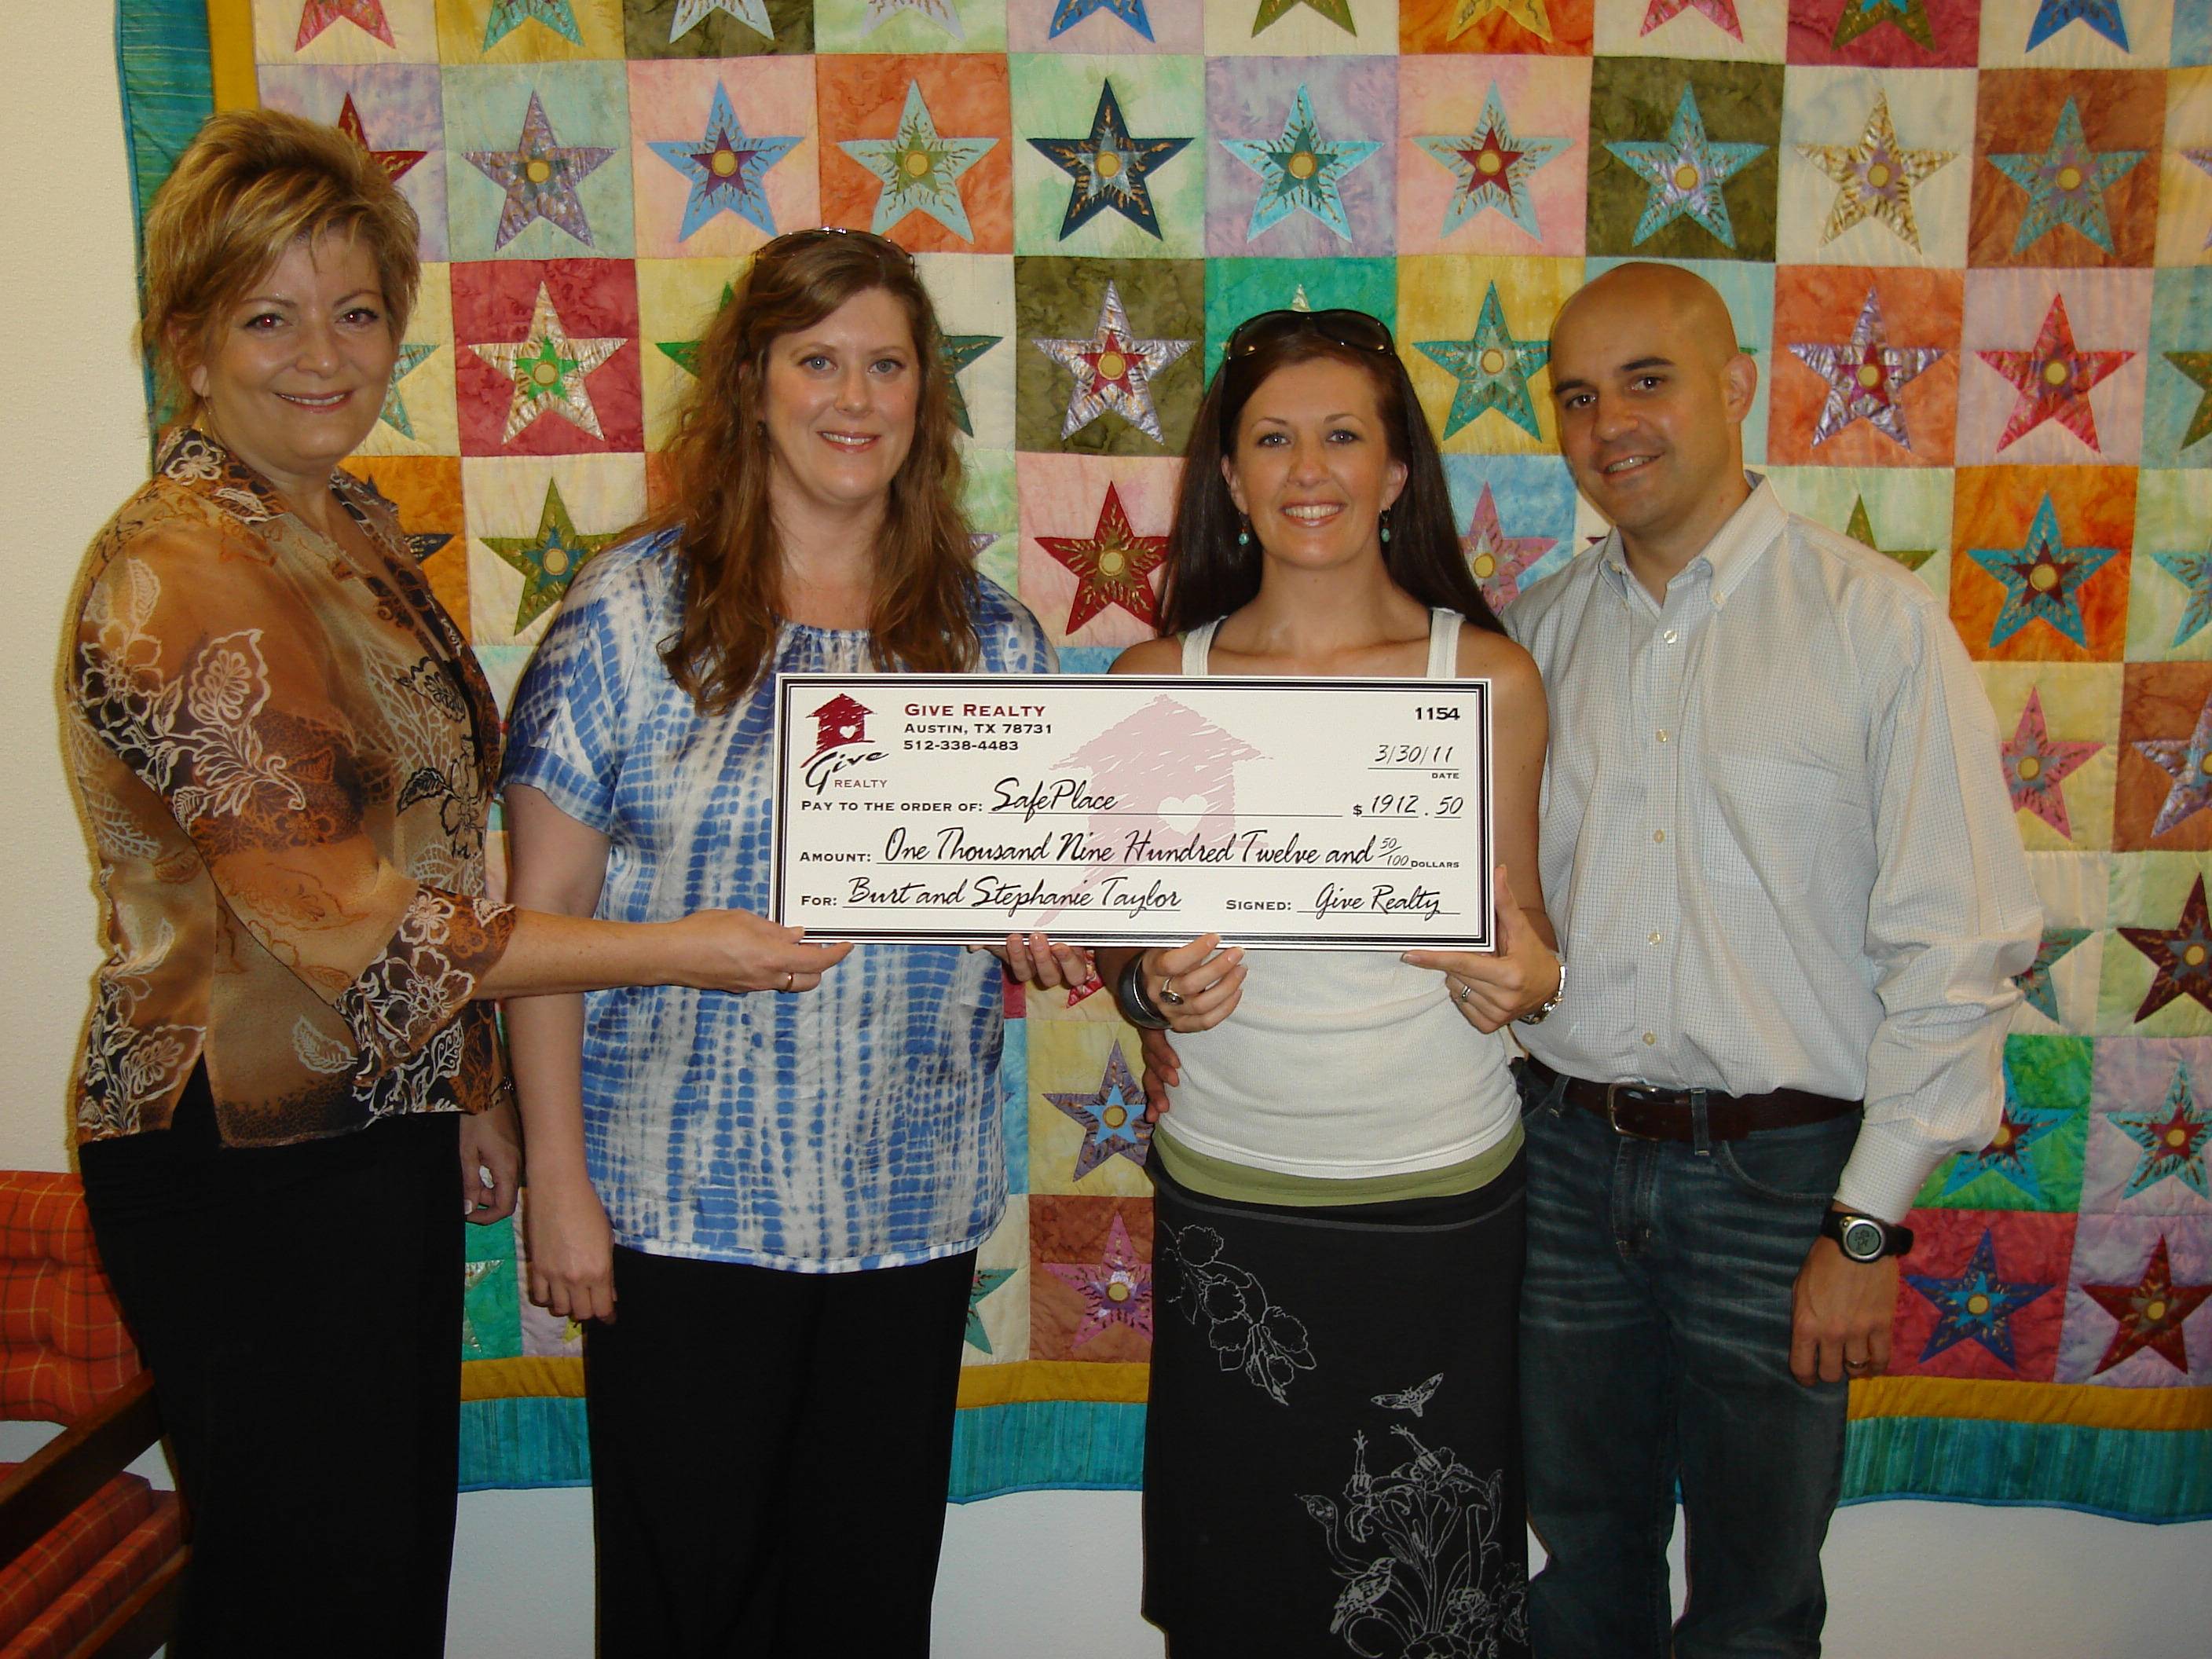 $1,912.50 donated to SafePlace on behalf of the Taylor Family